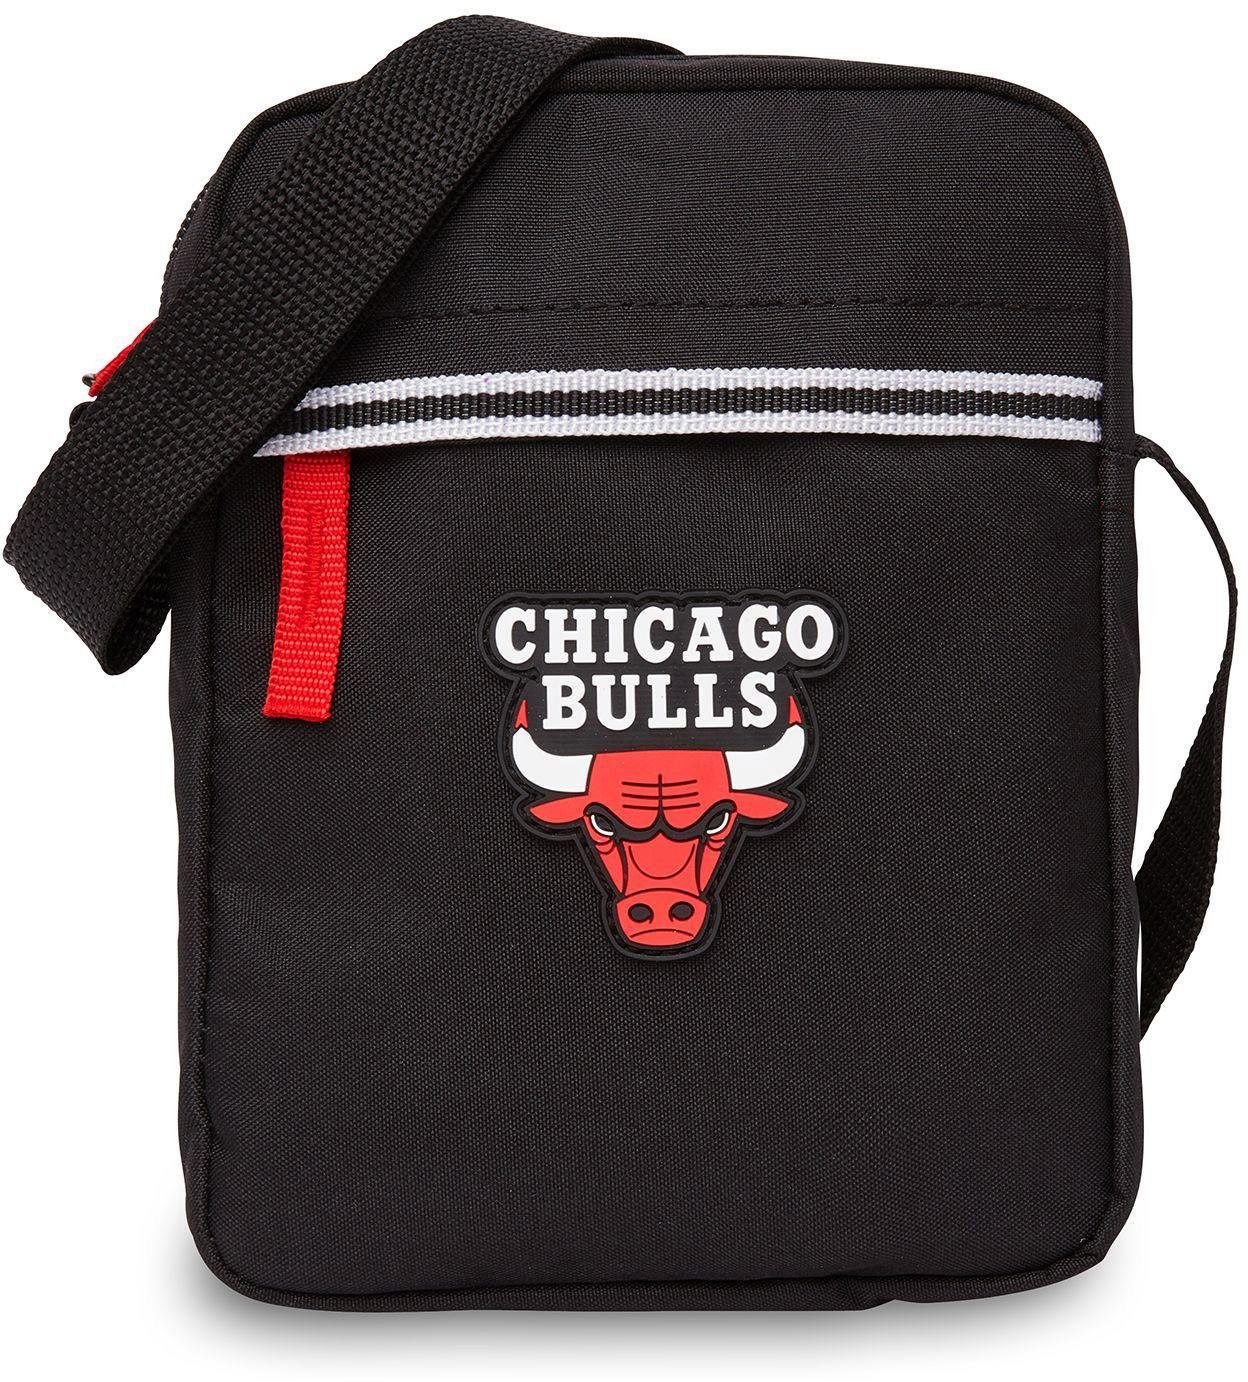 NBA Umhängetasche, »NBA Small Shoulder Bag, Chicago Bulls«